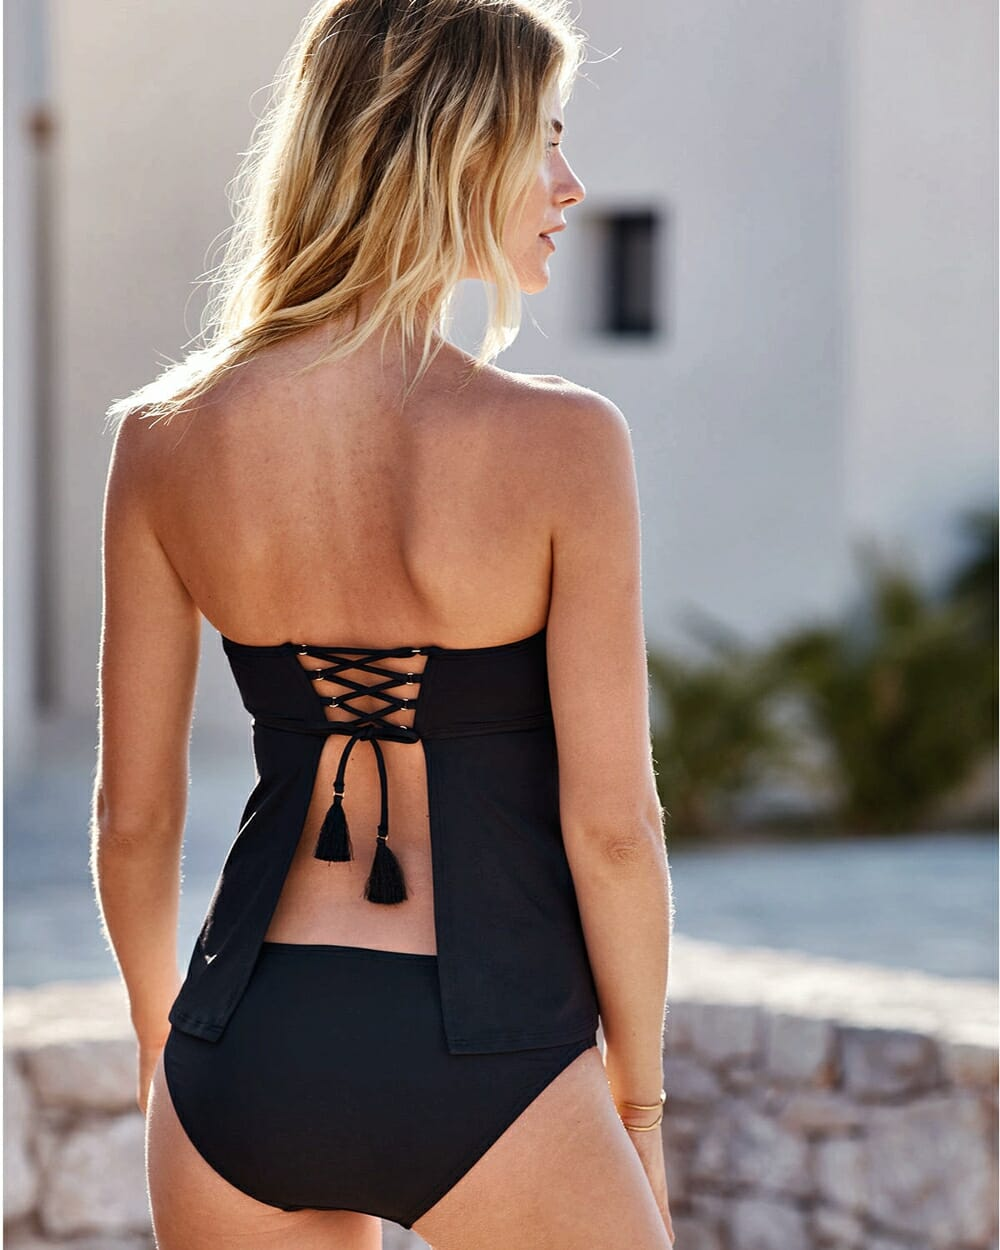 Evolution Of Swimwear - Tankini 1990s back